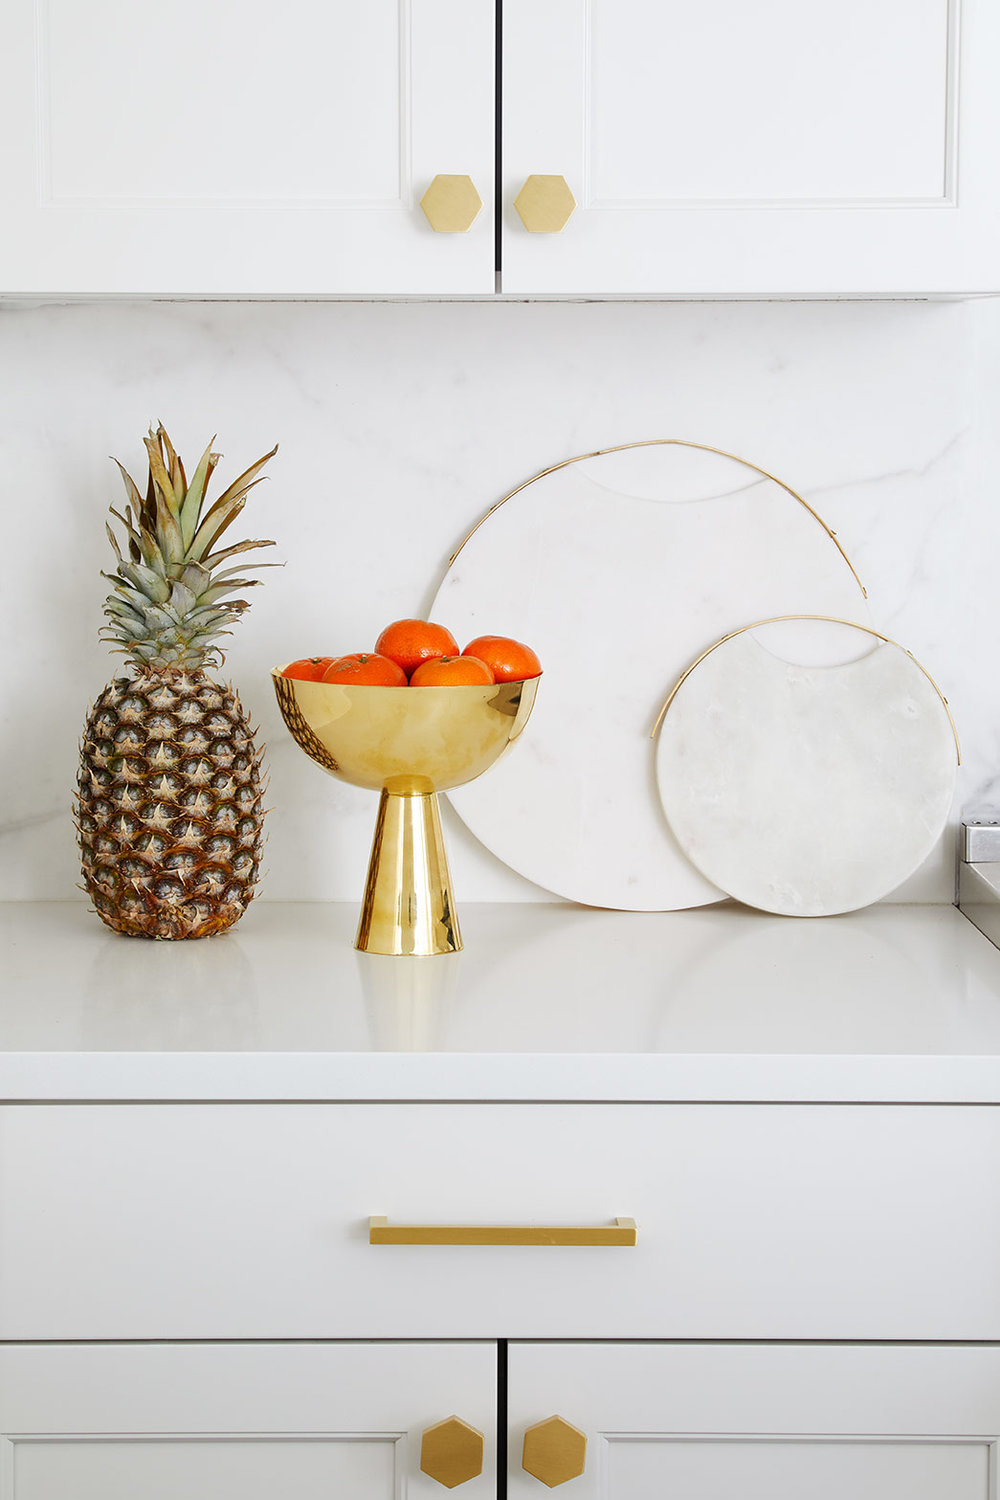 The pineapple motif has been in and out for years, and it's back again in 2018. You can find varieties of pineapple in print, table lamp shades, and more. Or, you could alway use the real thing.